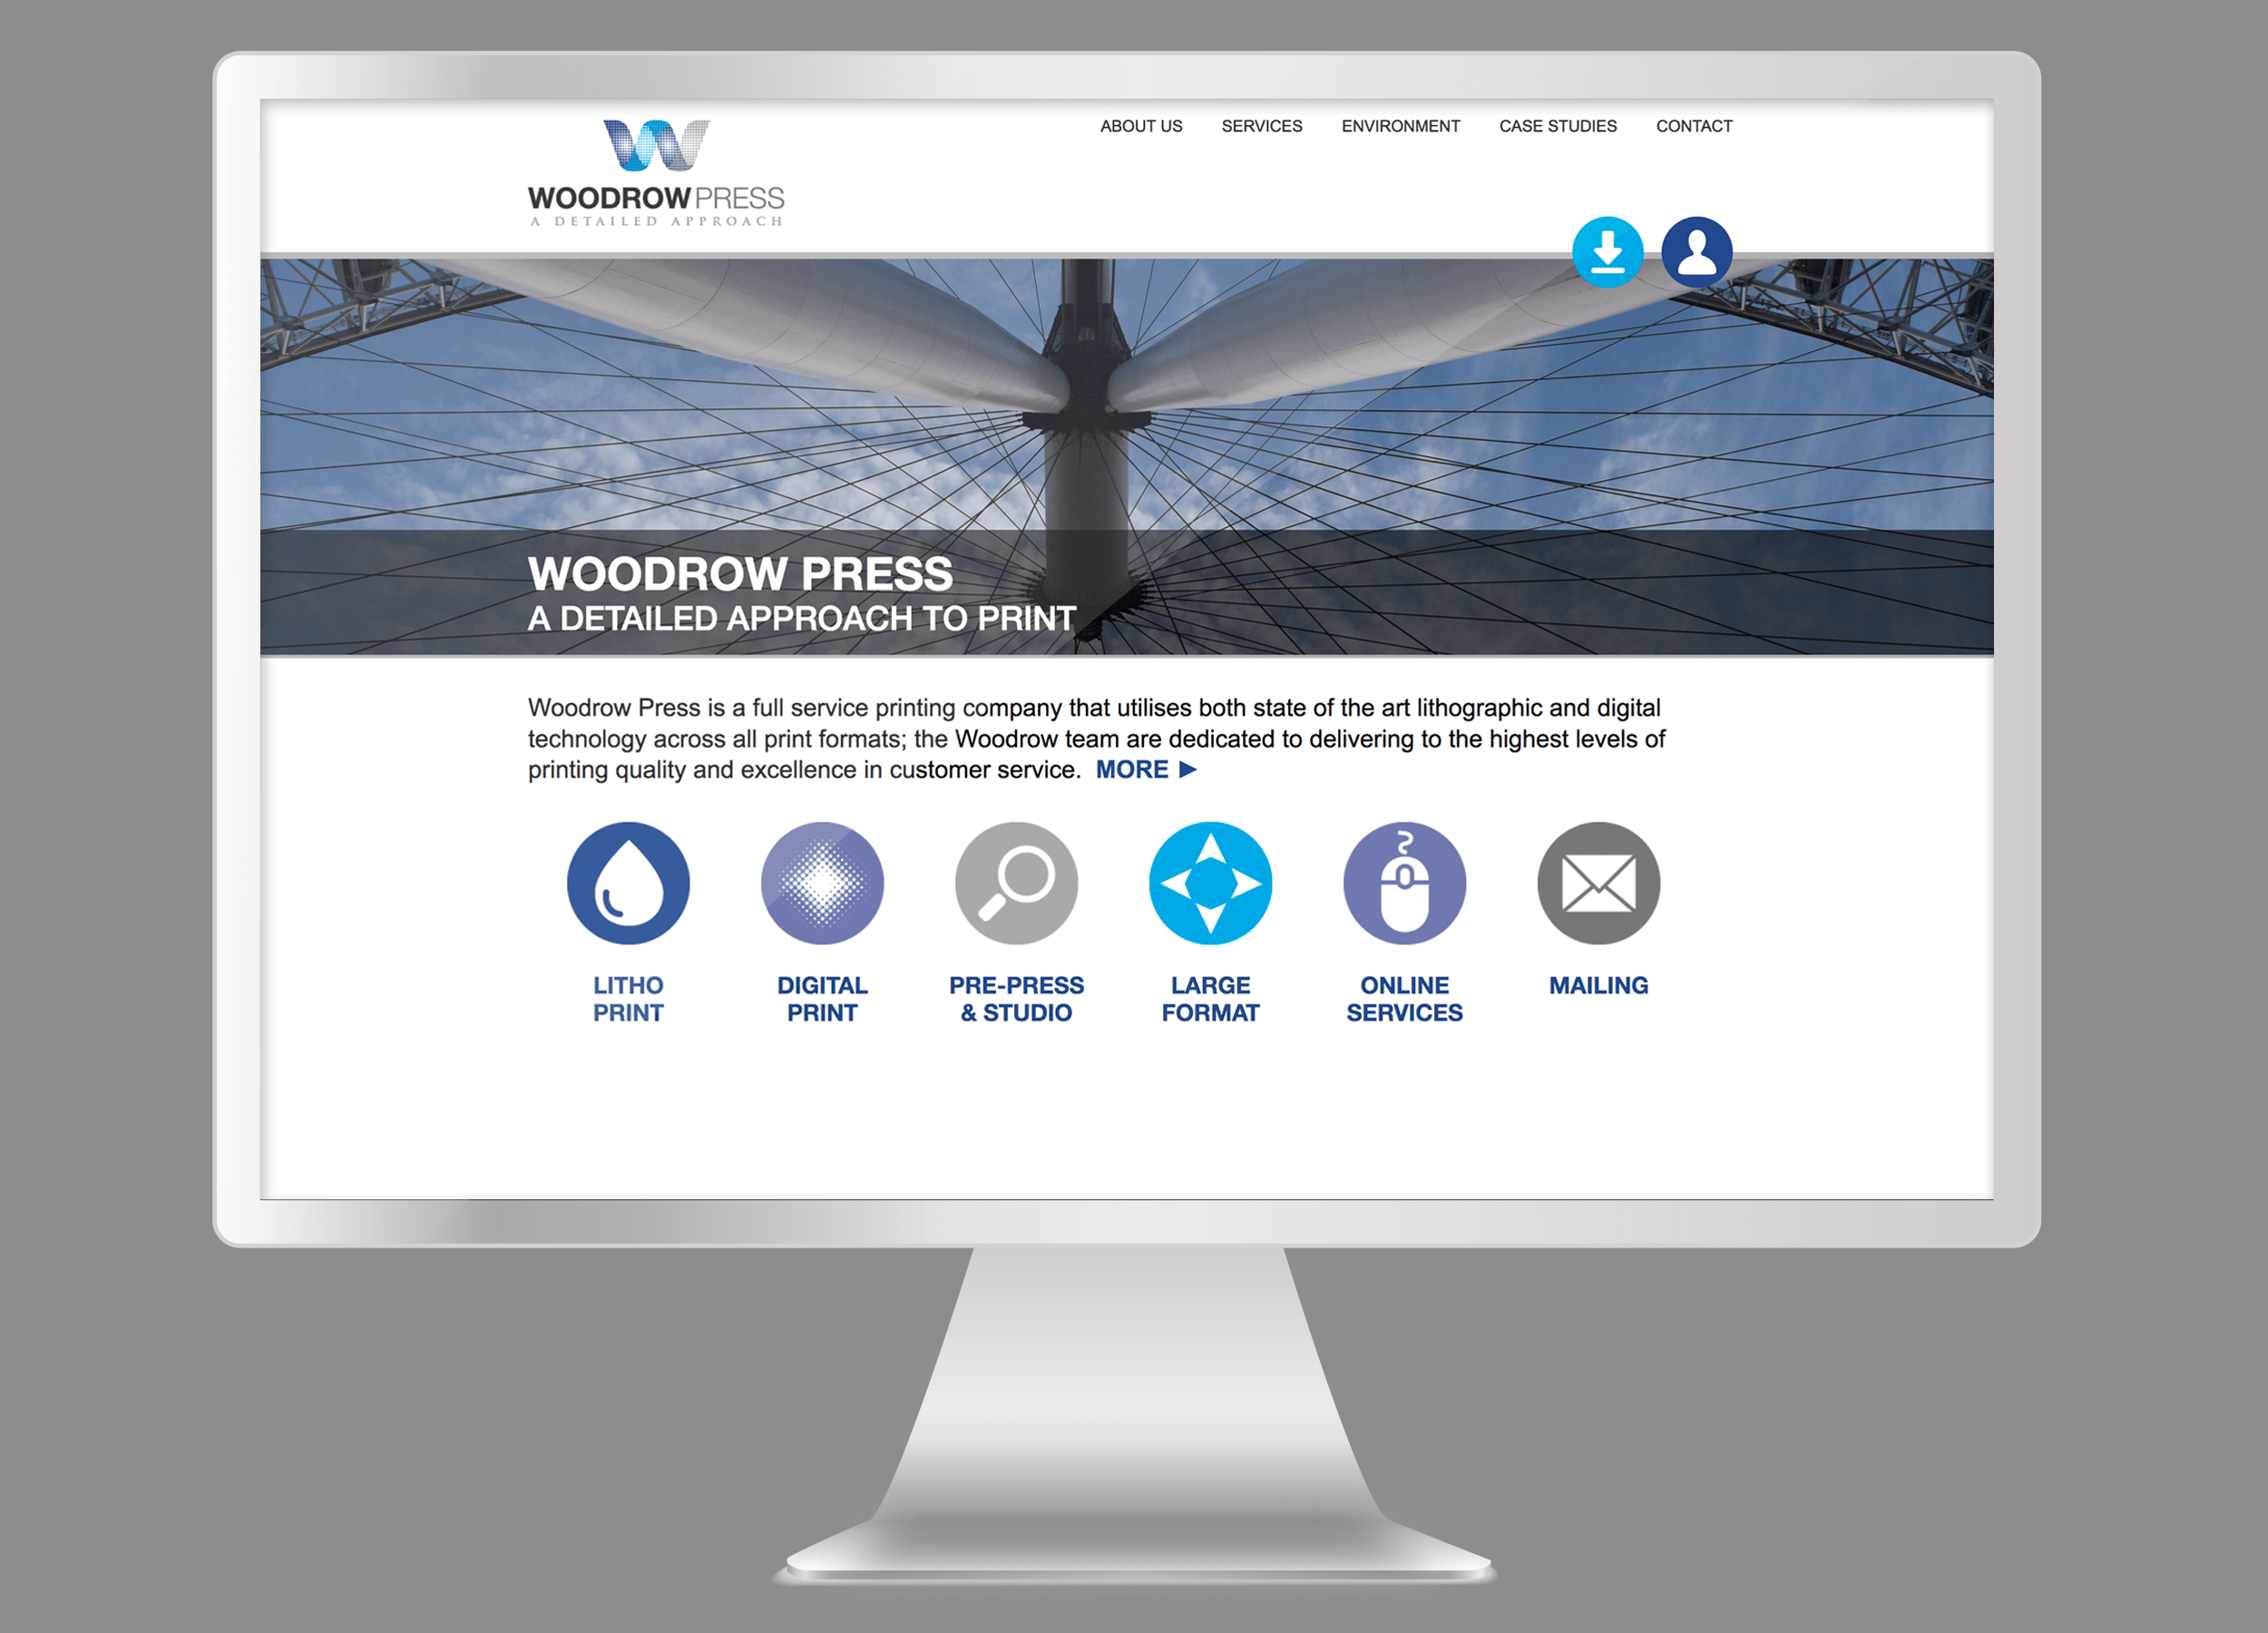 Woodrow Press Limited